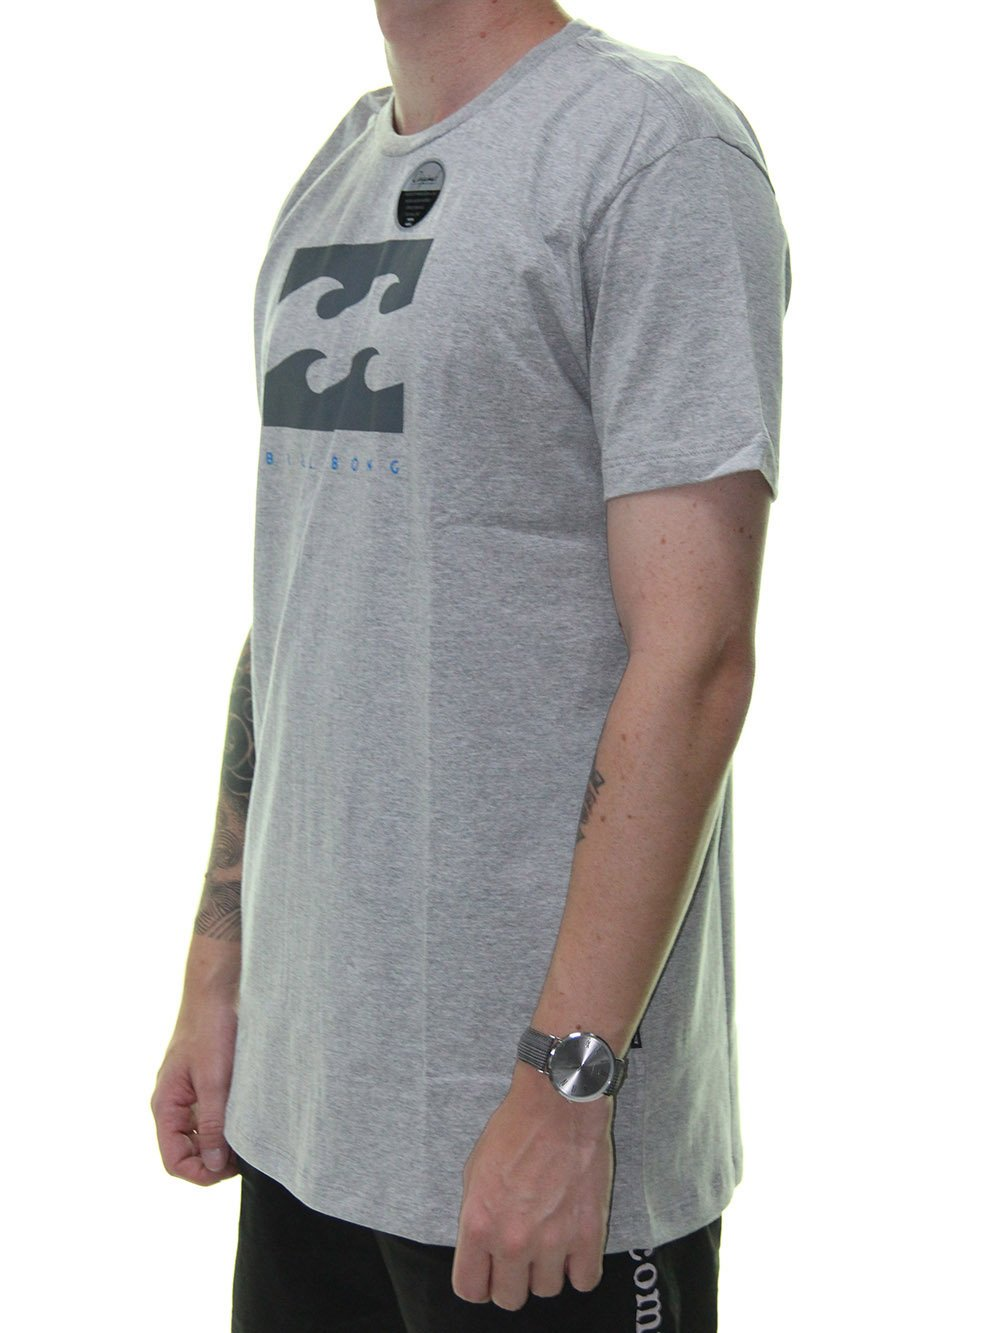 67b9efb6f1 ... Camiseta Masculina Billabong Original Secret Estampada Manga Curta -  Cinza Mesclado ...